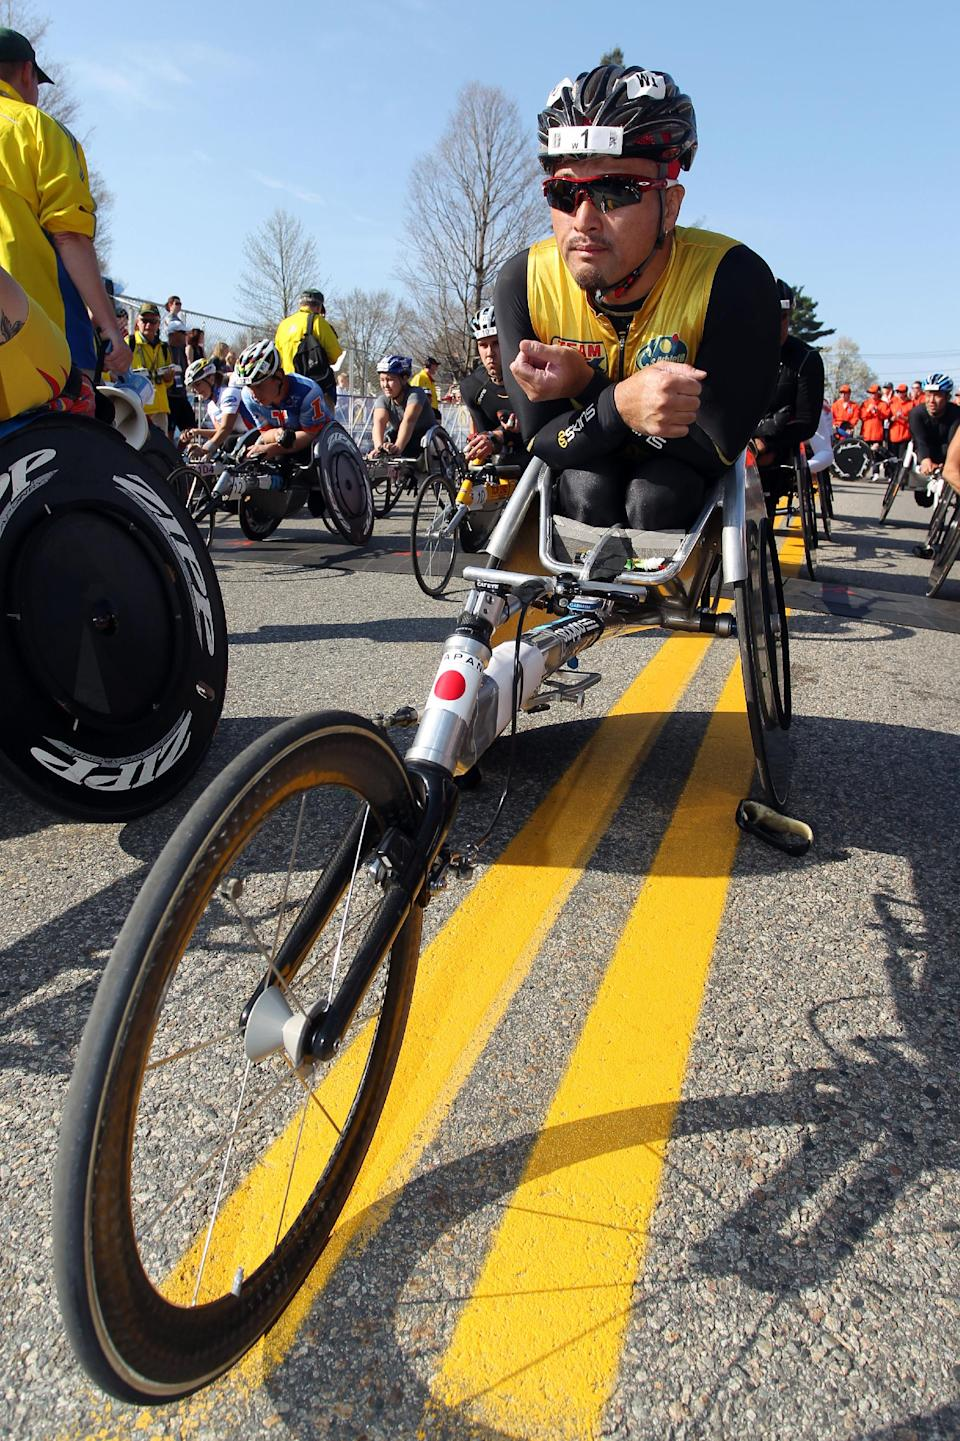 Masazumi Soejima, of Japan, waits for the start of the wheelchair division of 116th running of the Boston Marathon, in Hopkinton, Mass., Monday, April 16, 2012. (AP Photo/Stew Milne)